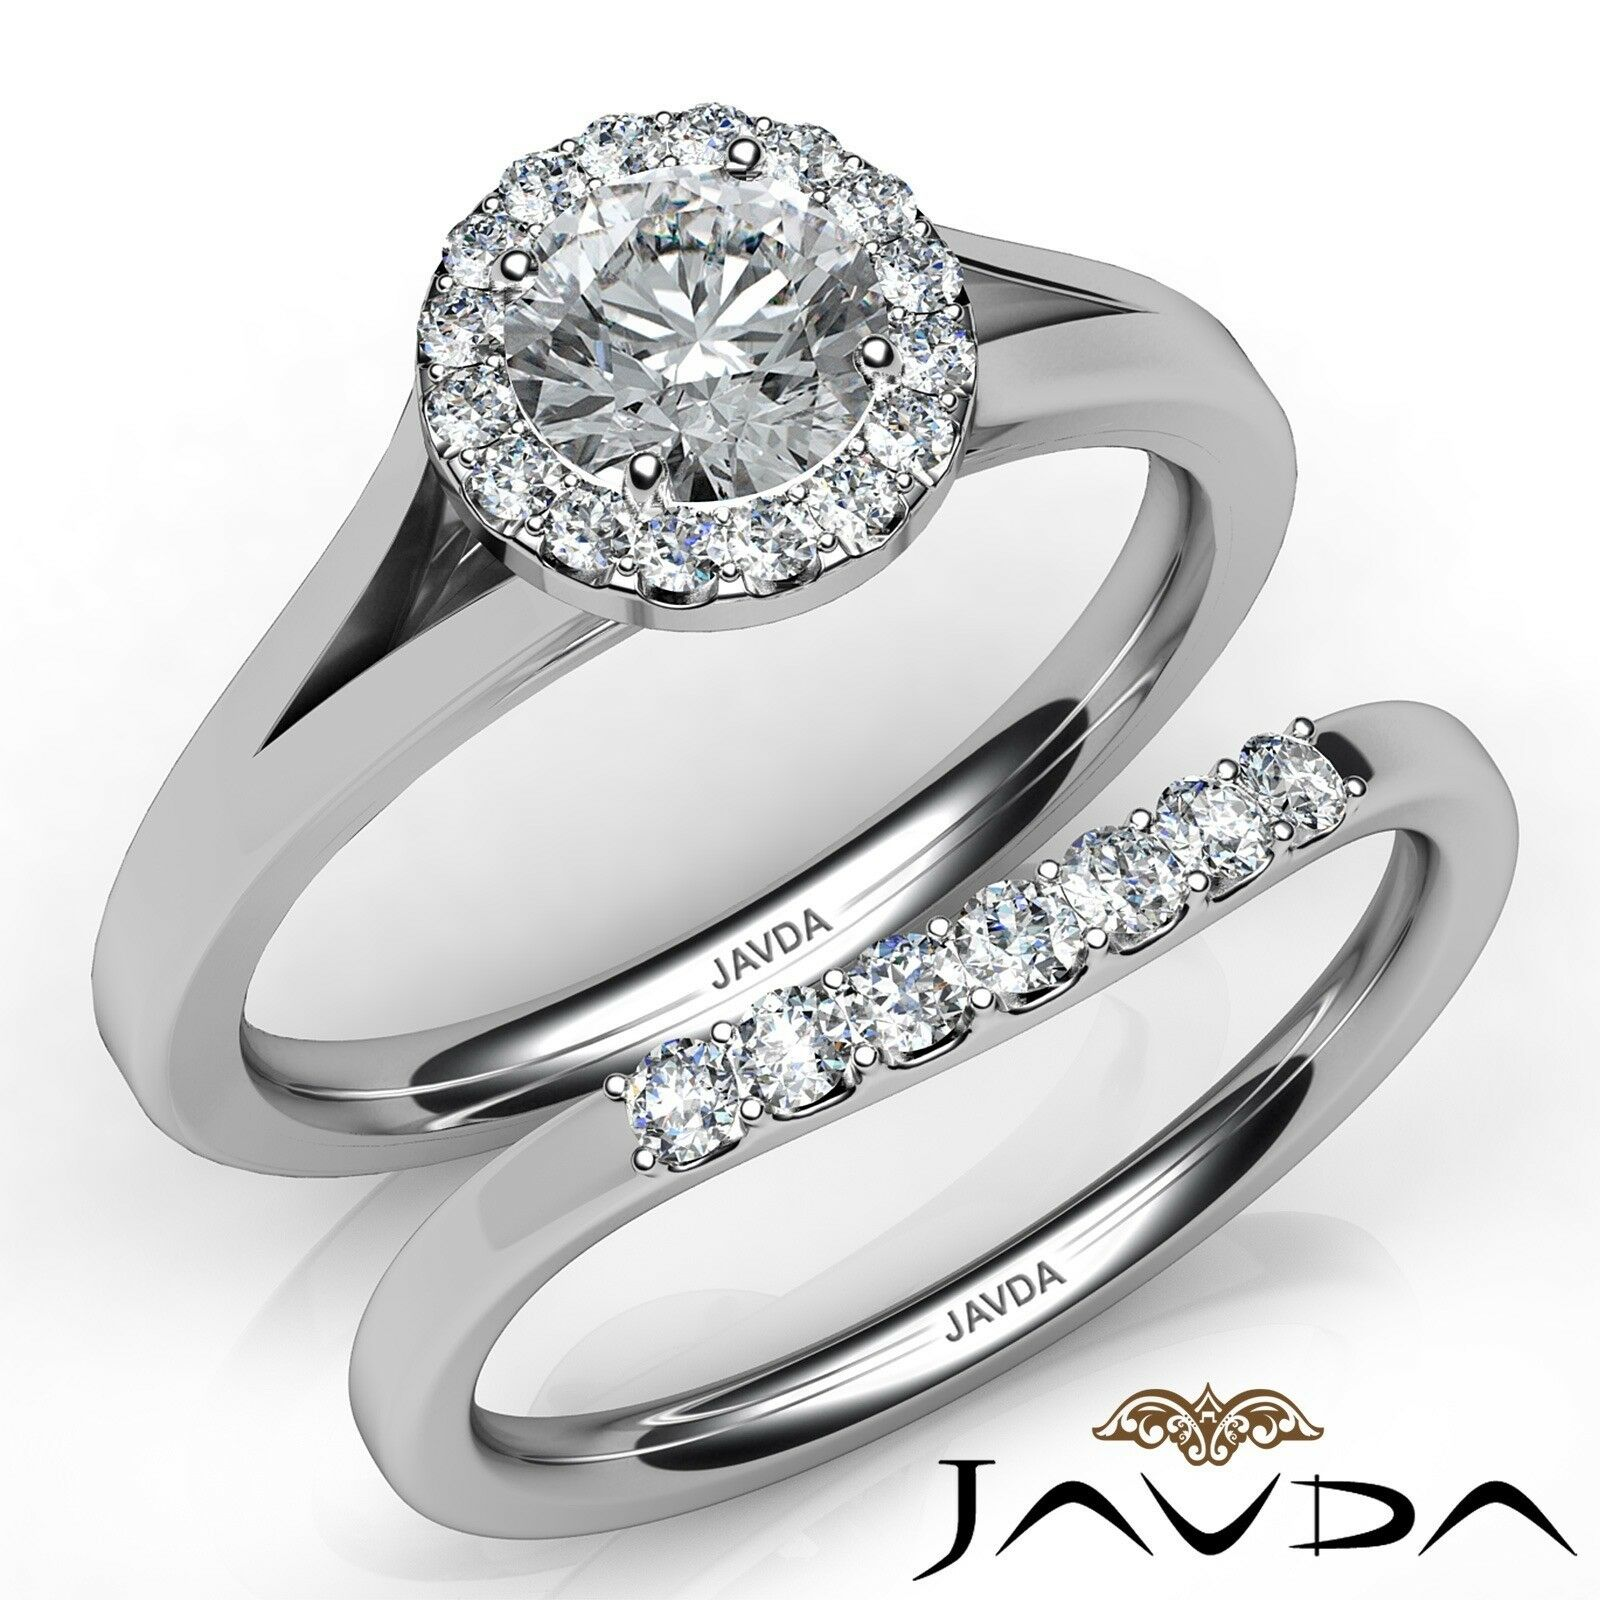 1.22ctw Classic Bridal Halo Pave Round Diamond Engagement Ring GIA H-VS2 W Gold